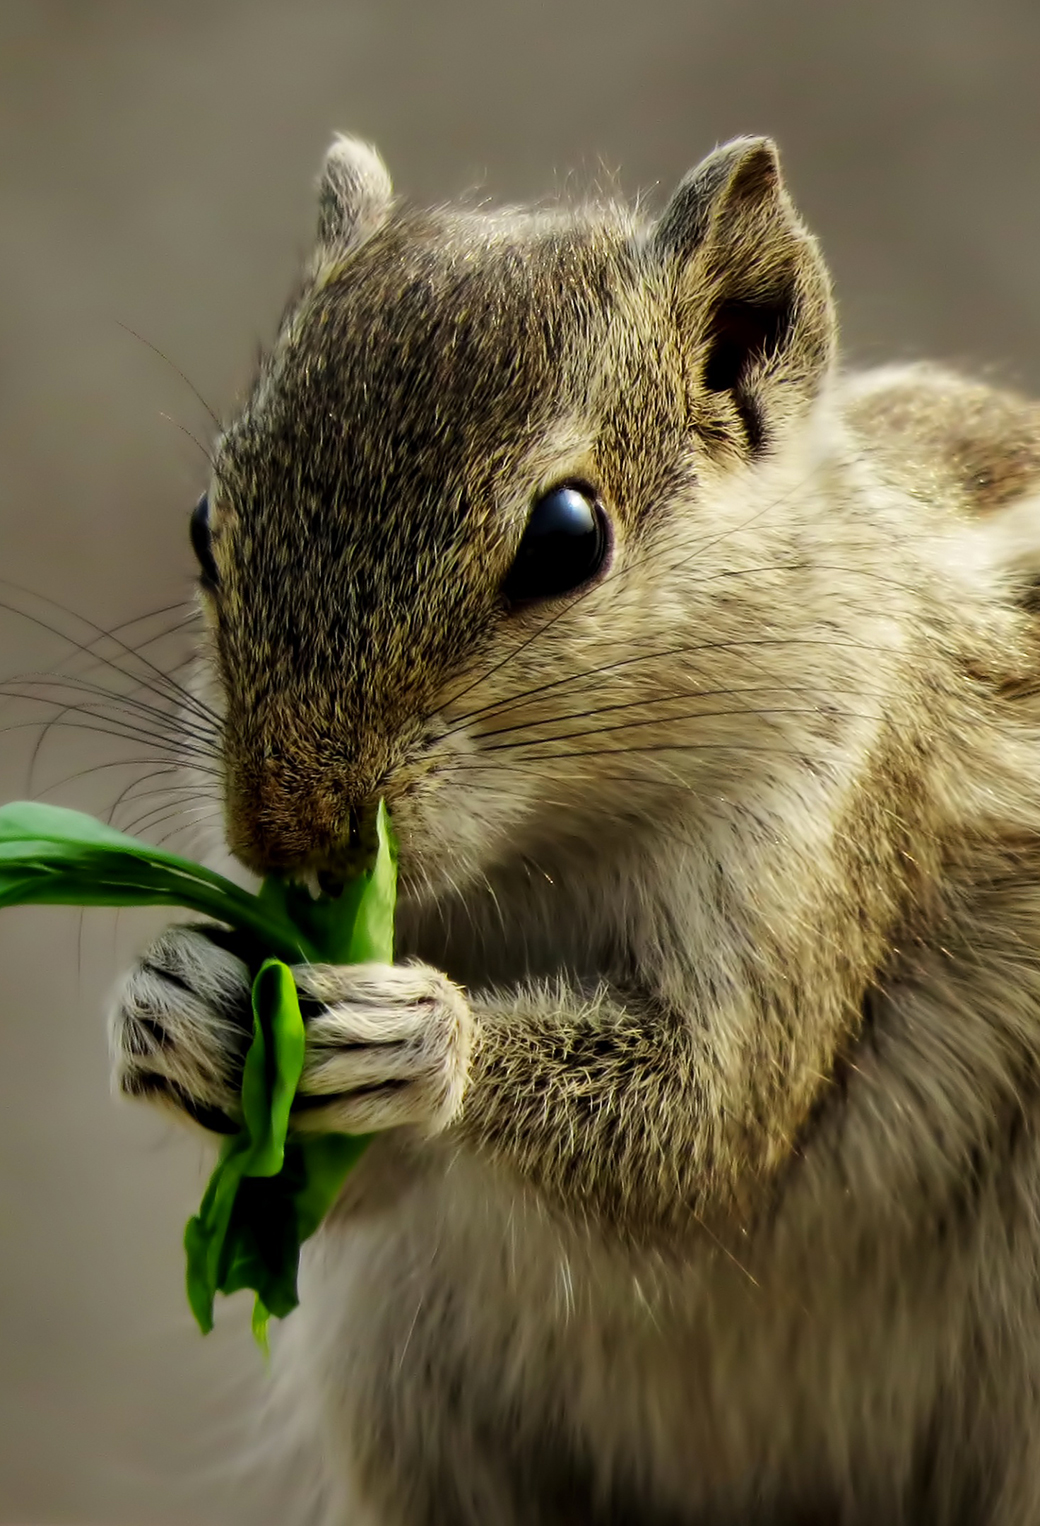 Indian Palm Squirrel Wallpaper for iPhone 11, Pro Max, X ...